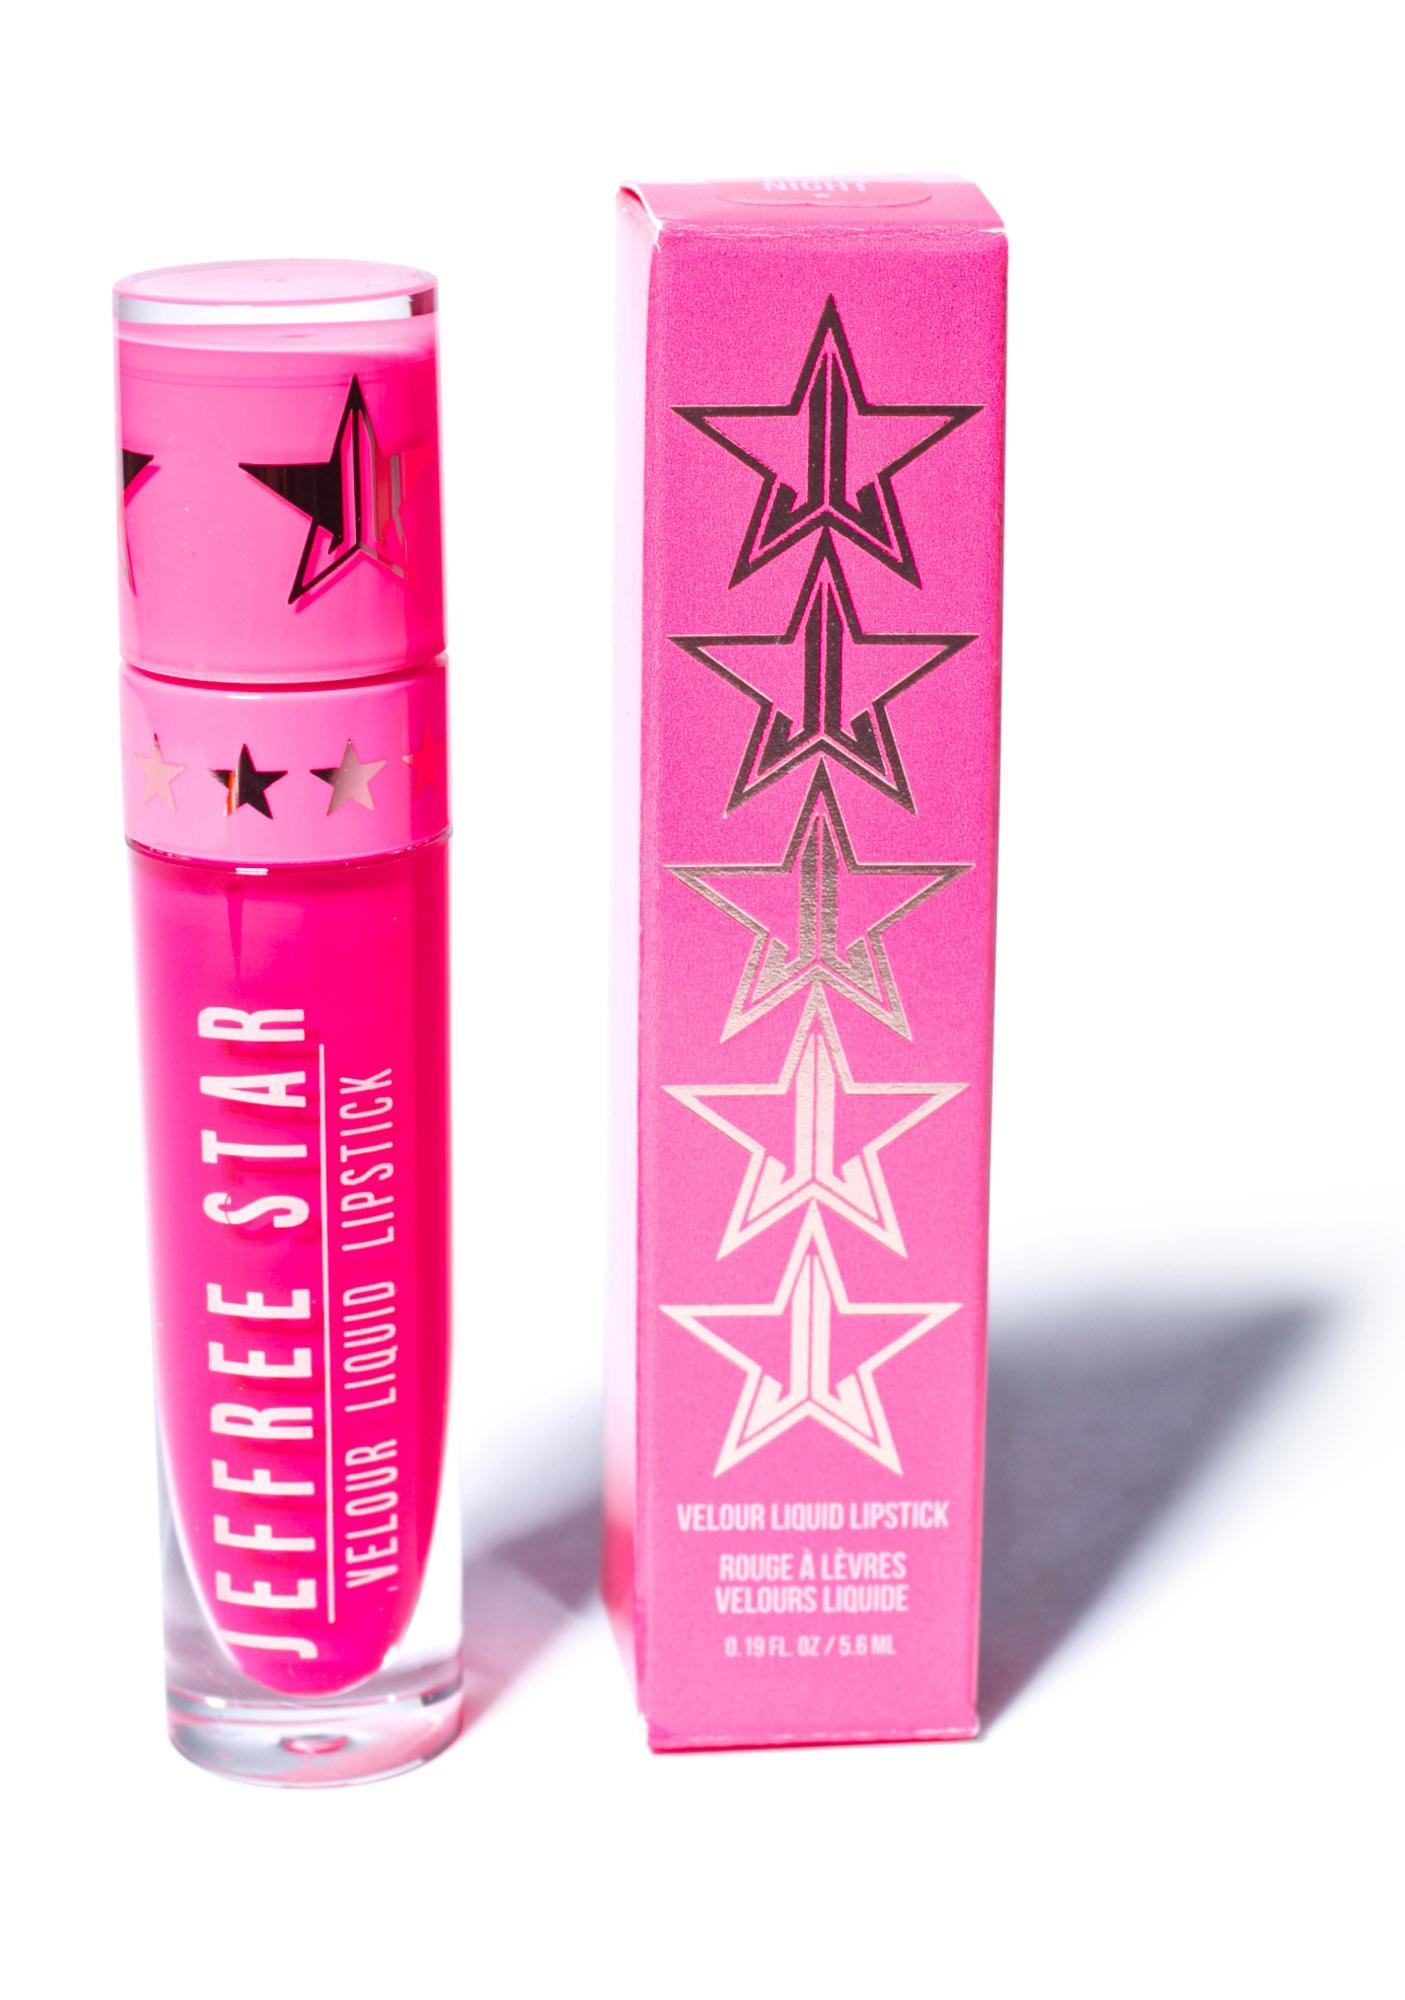 Jeffree Star Prom Night Liquid Lipstick